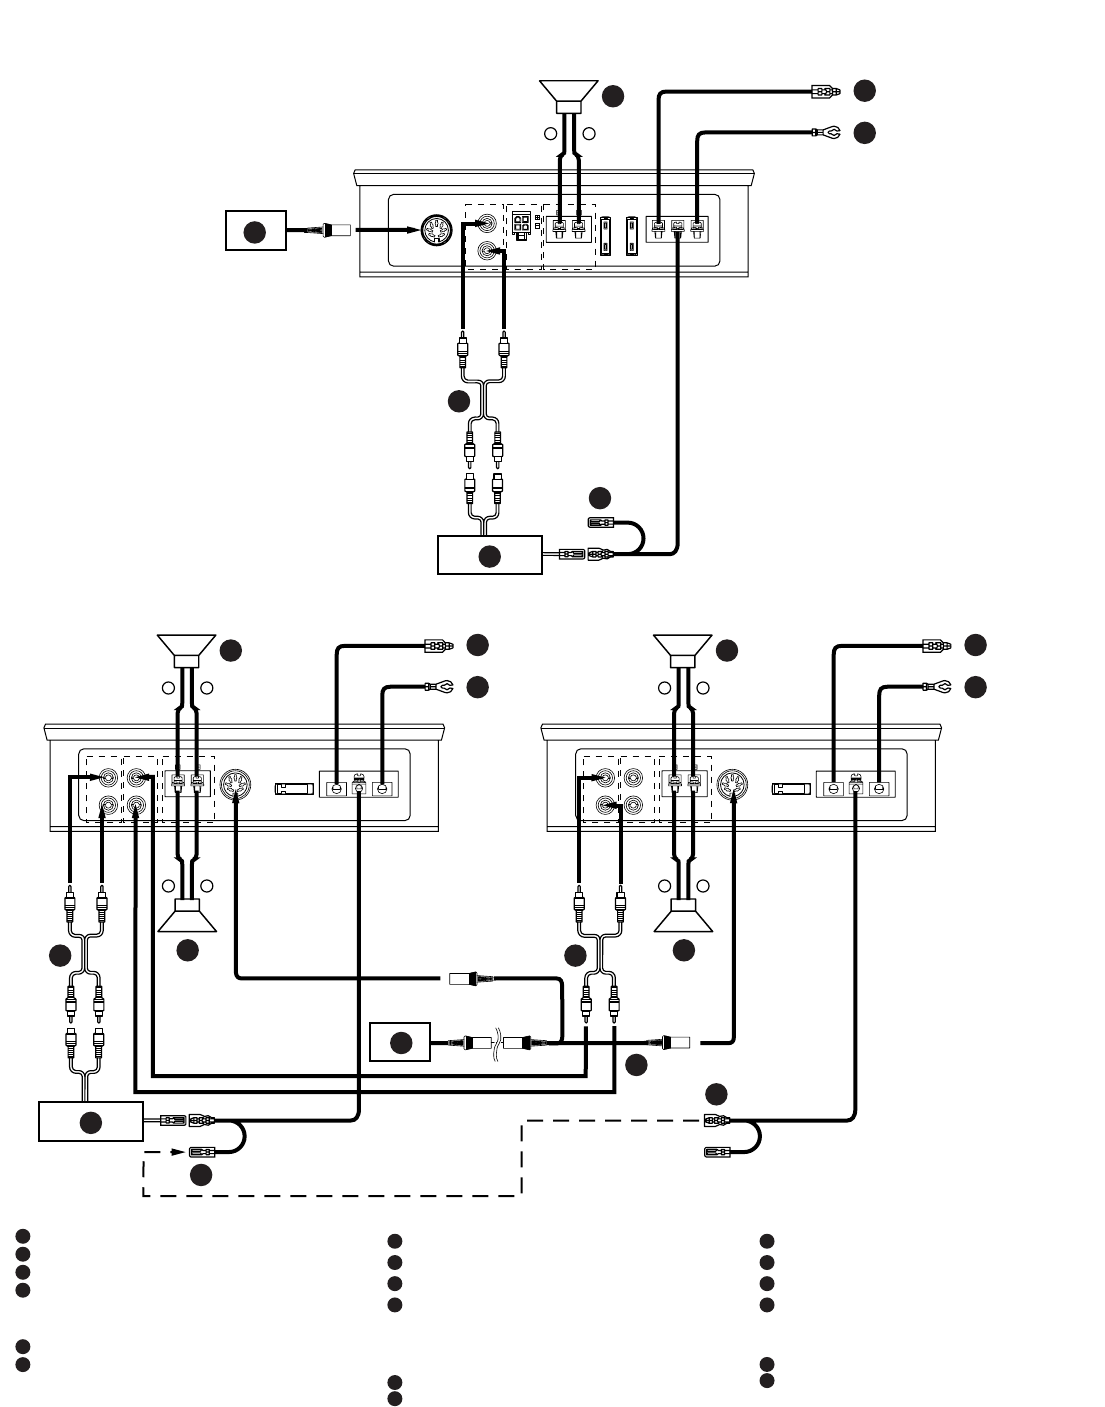 Page 19 of Kenwood Stereo Amplifier MRD-M500 User Guide